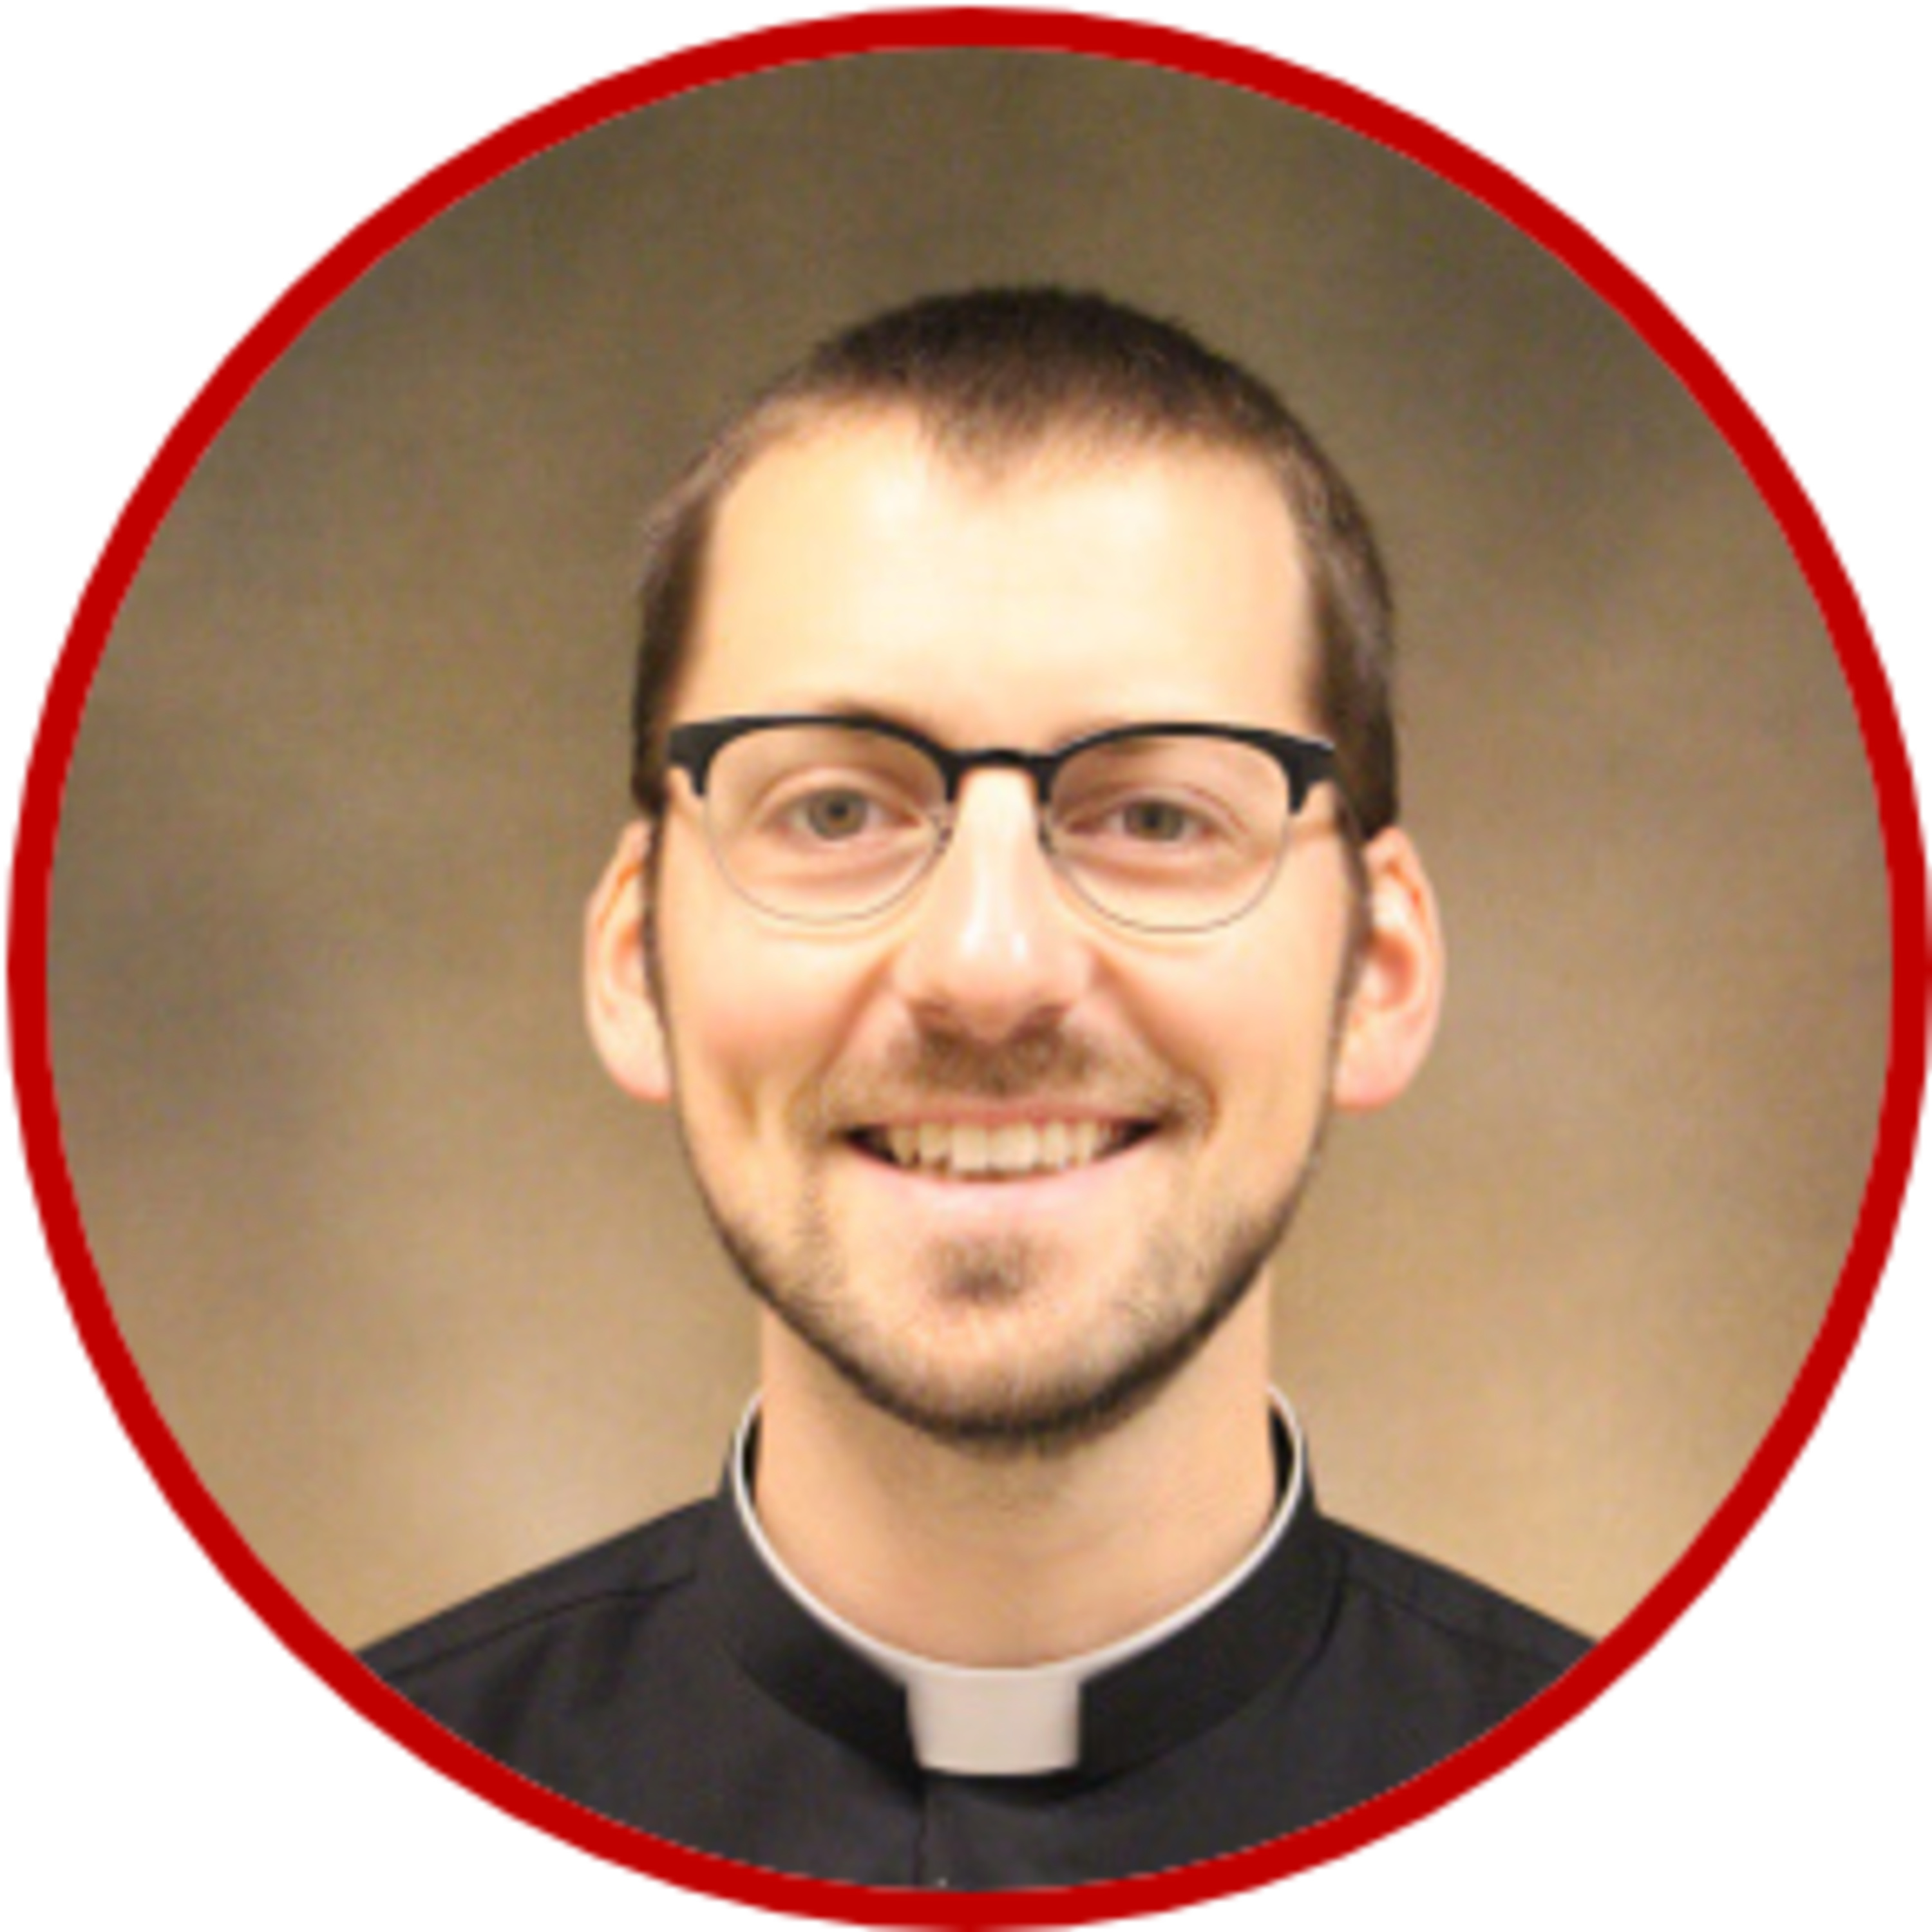 2nd Sunday in Ordinary Time: Fr. Christian DeCarlo